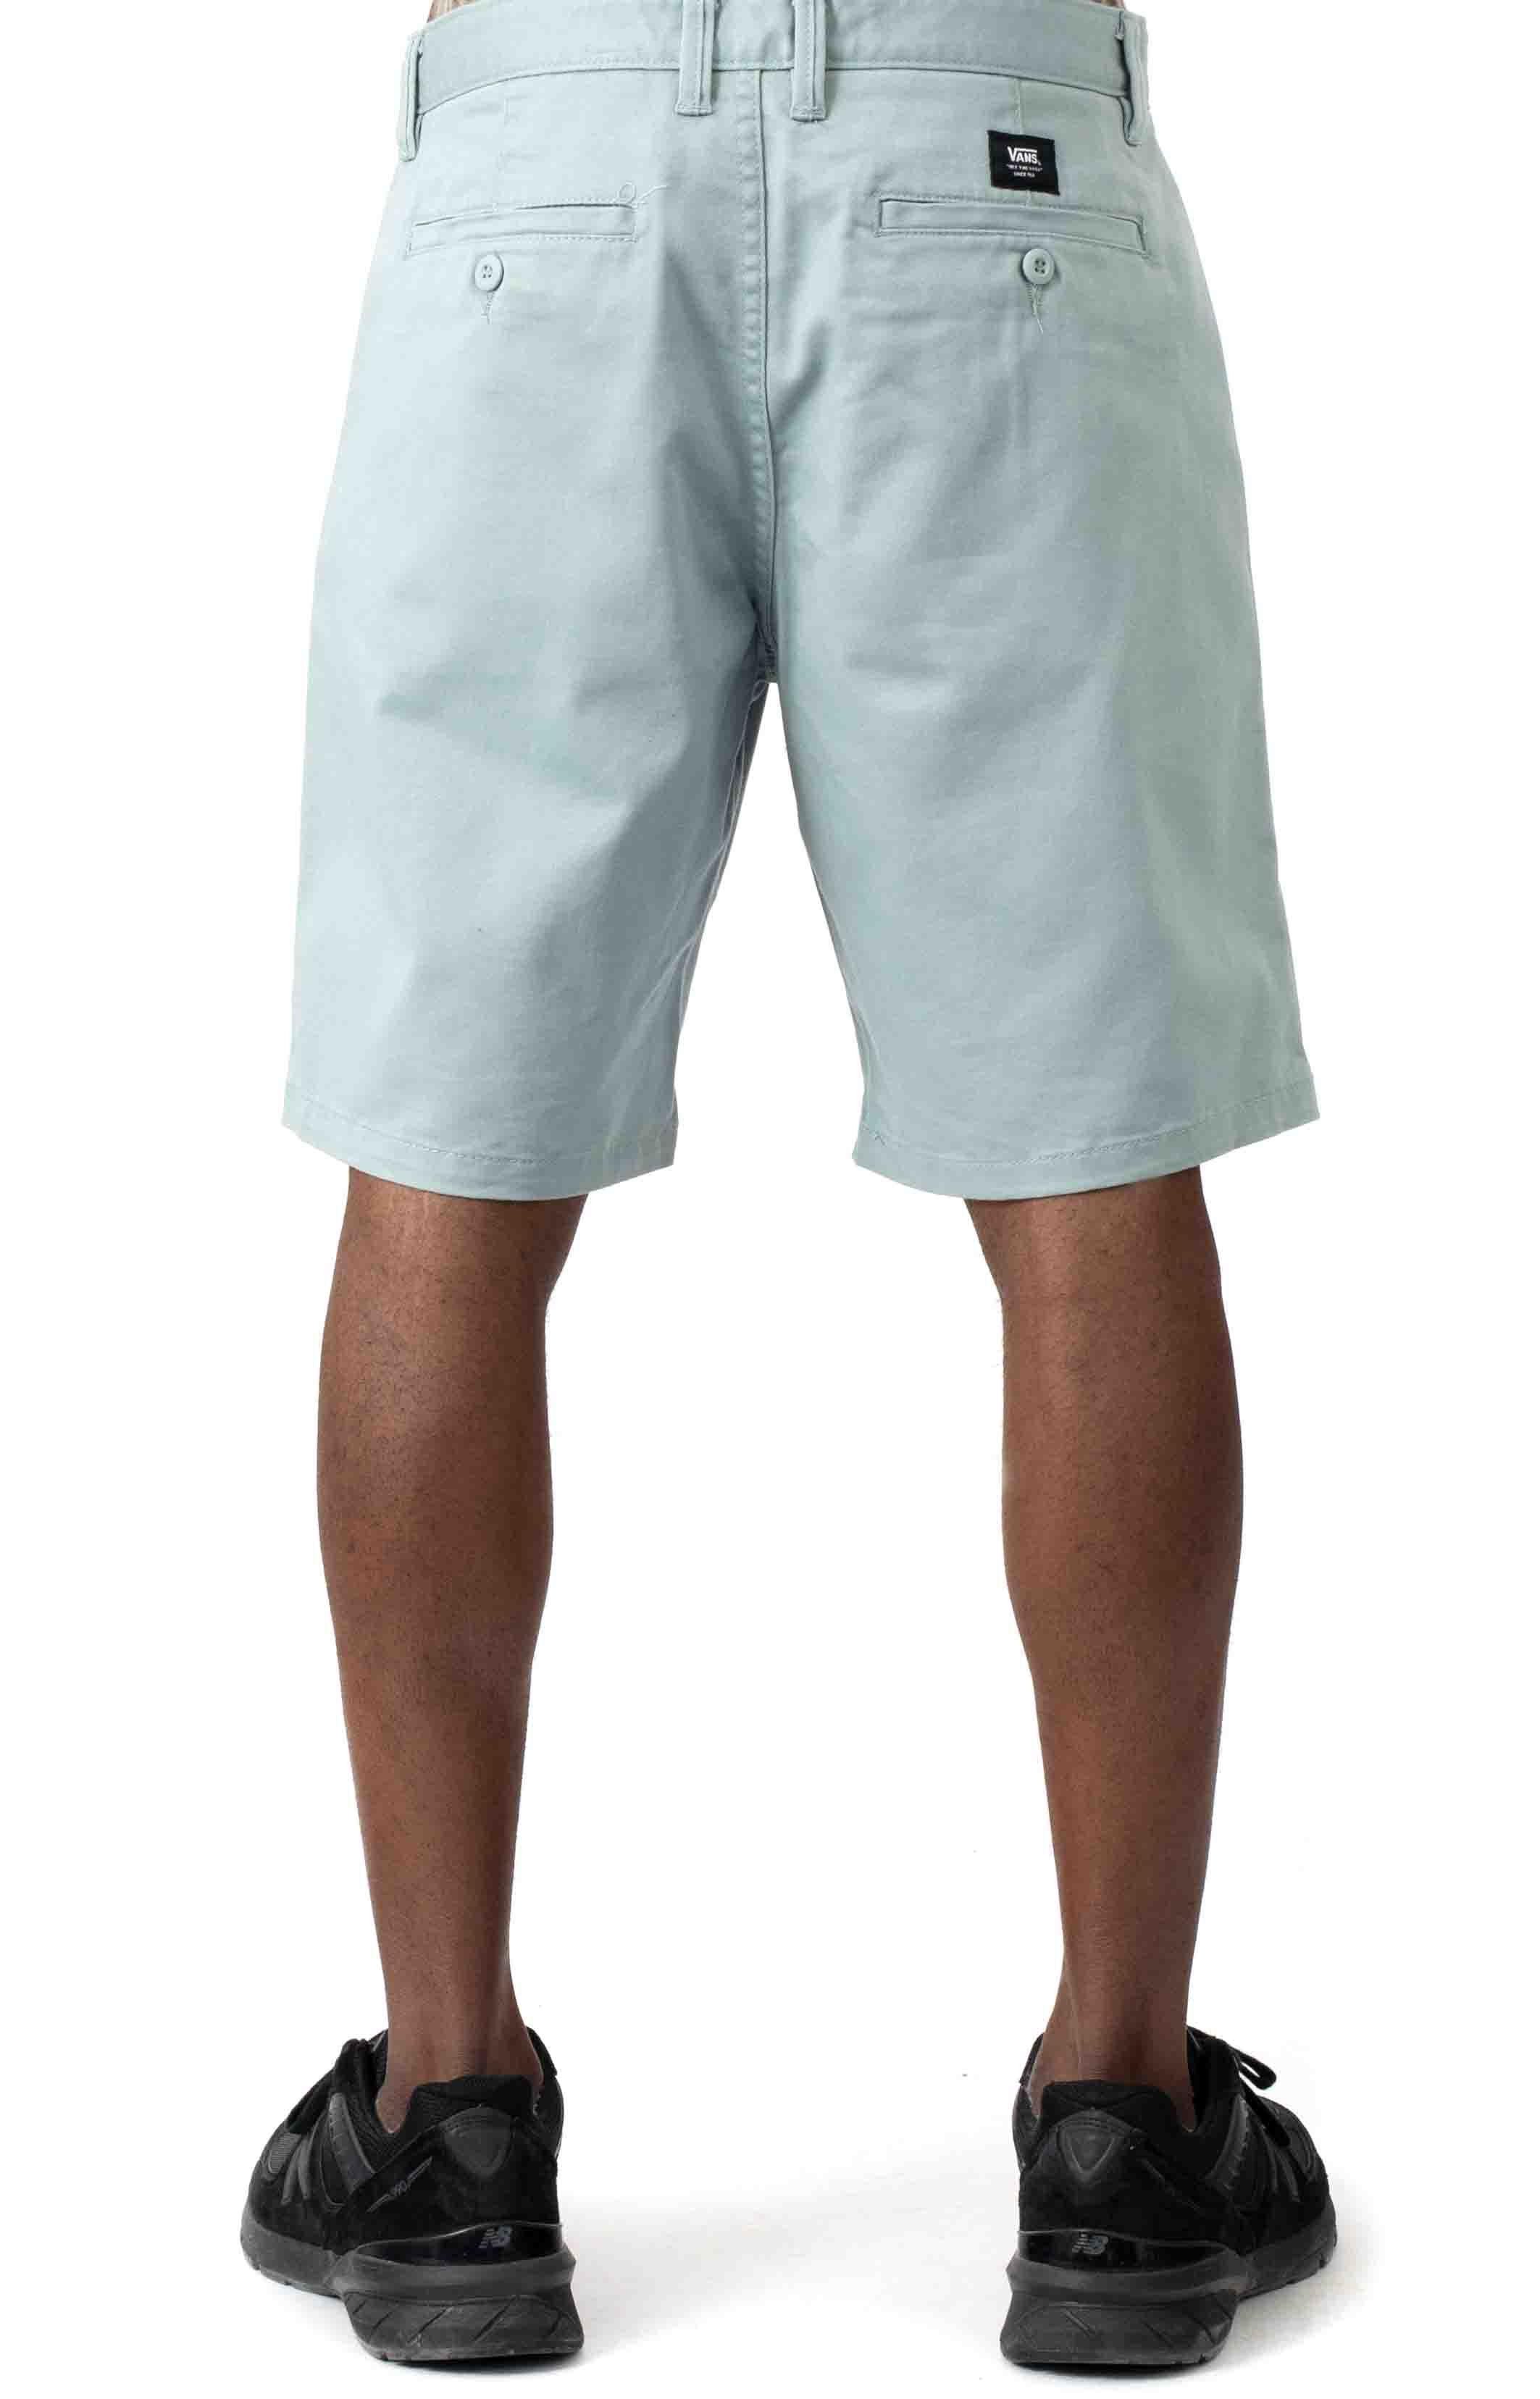 Authentic Stretch Shorts - Abyss 3